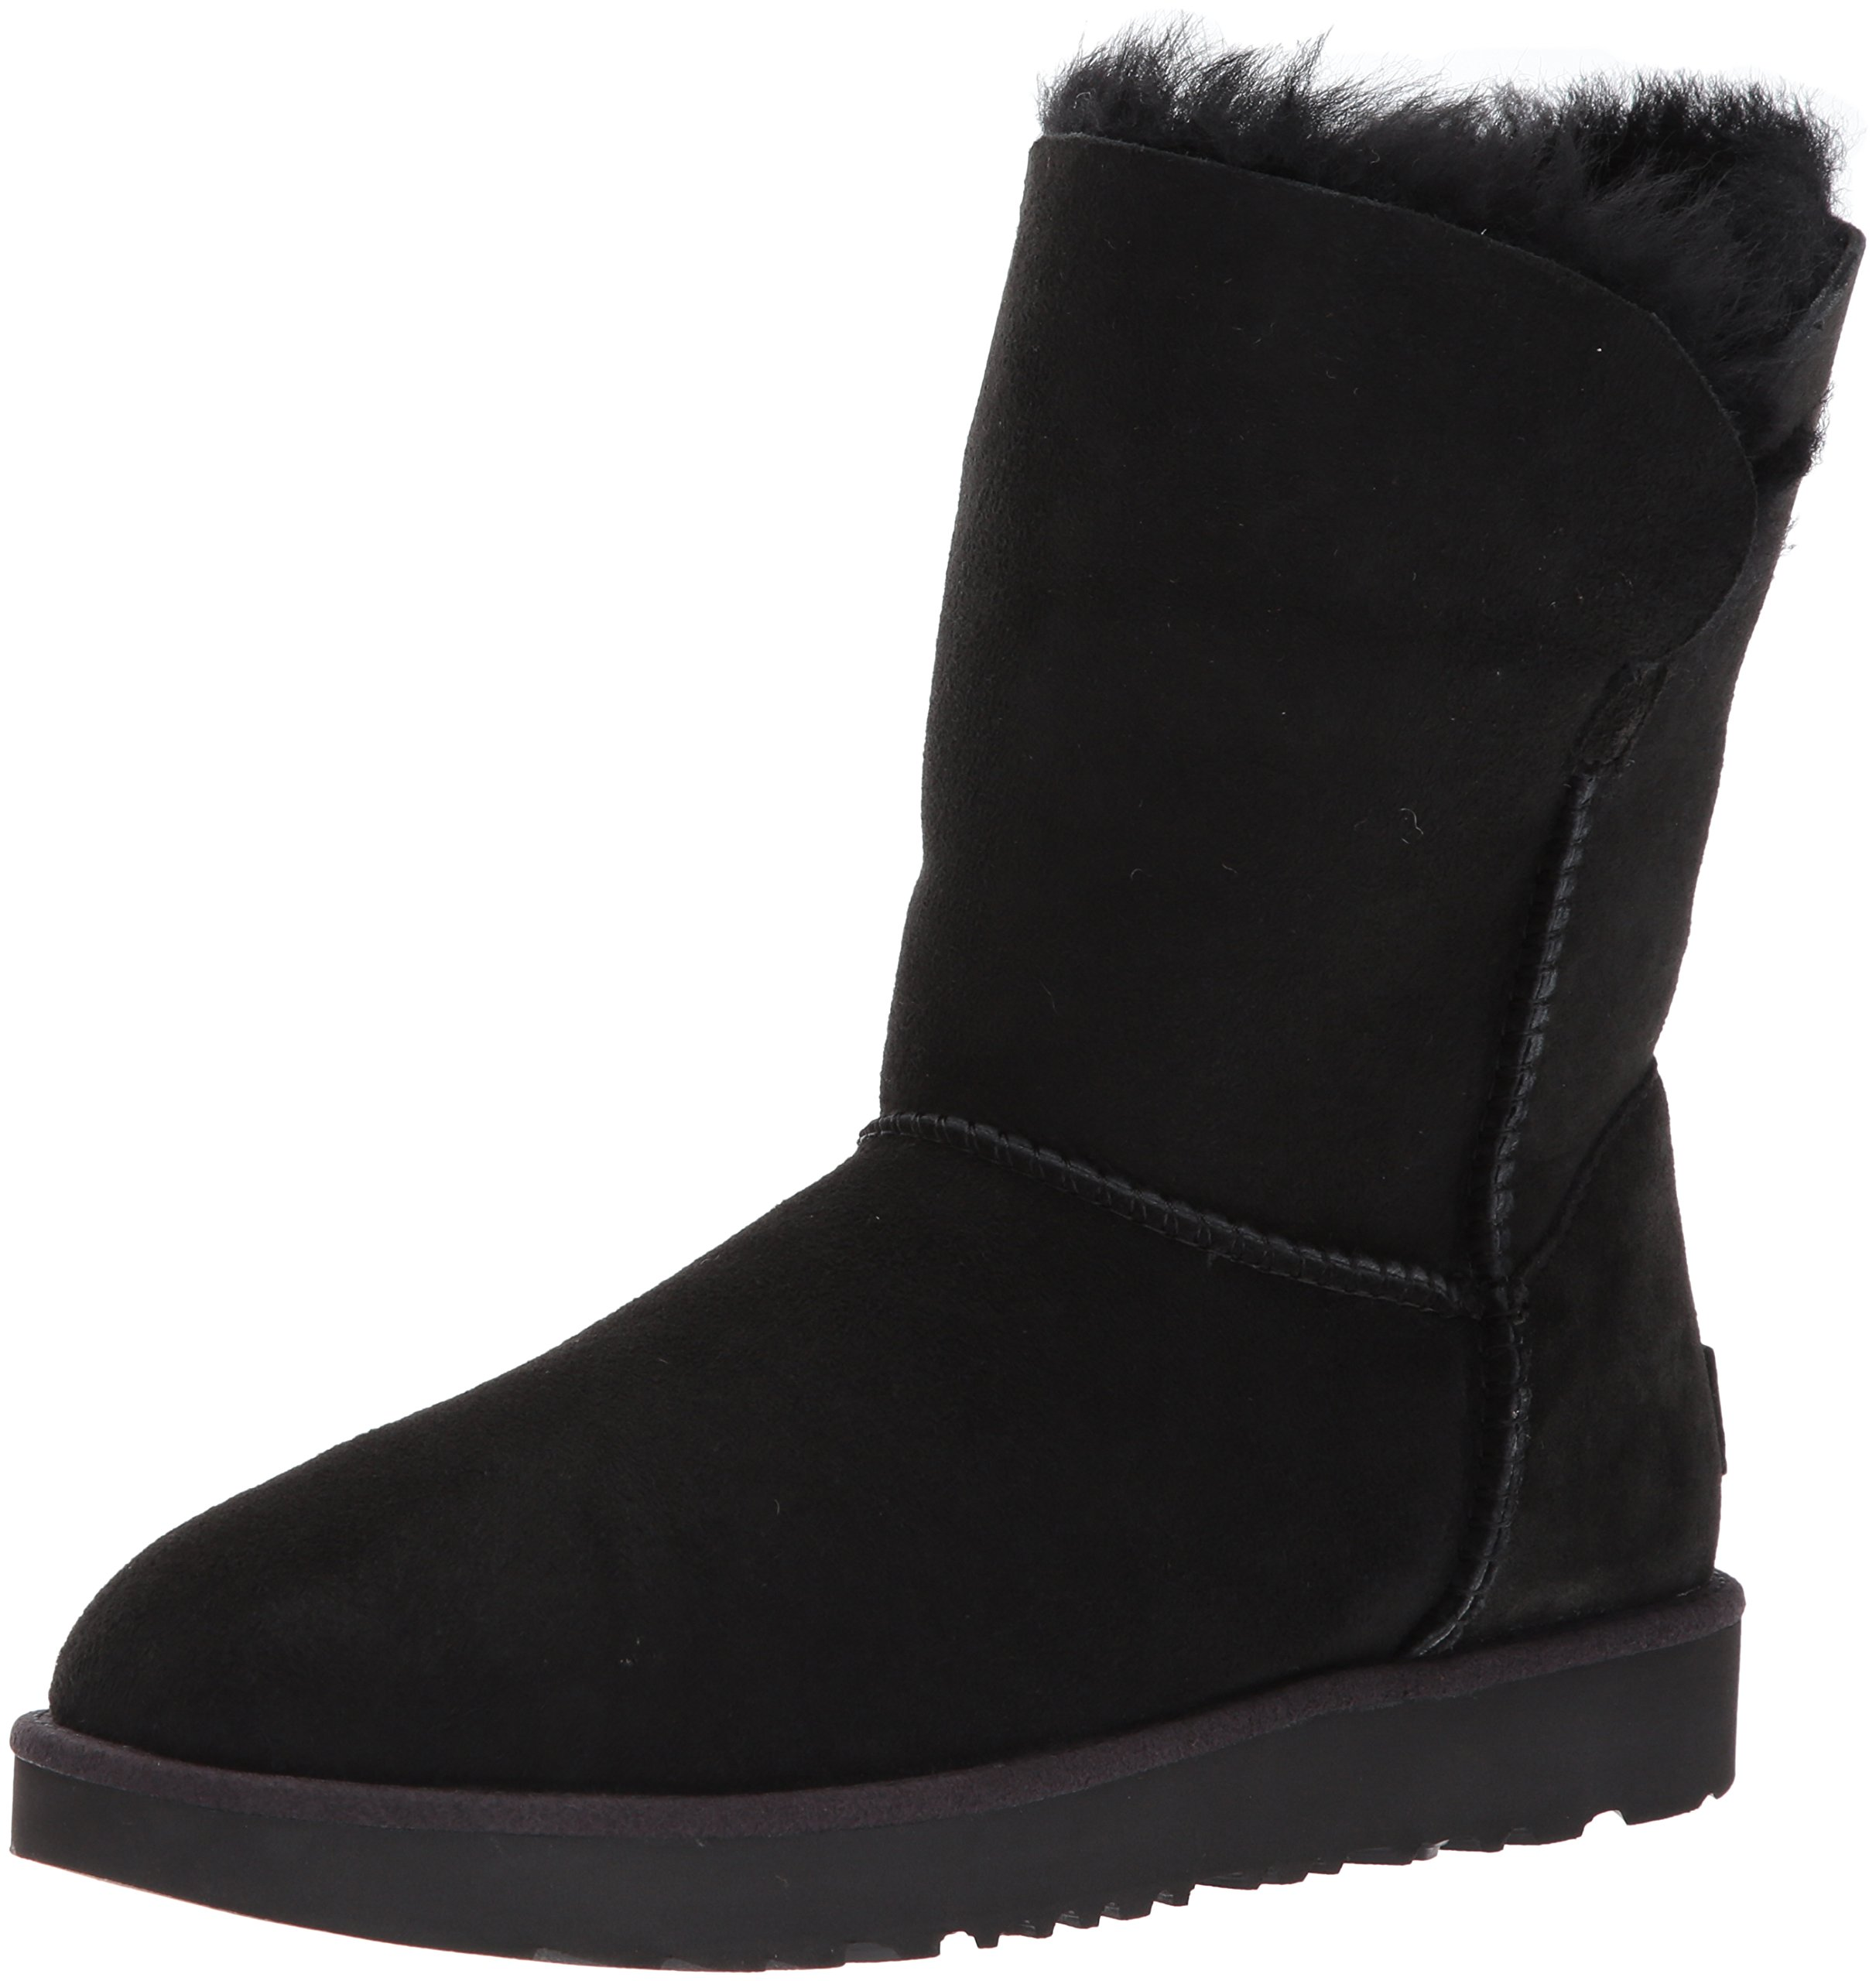 UGG Women's Classic Cuff Short Winter Boot, Black, 5 M US